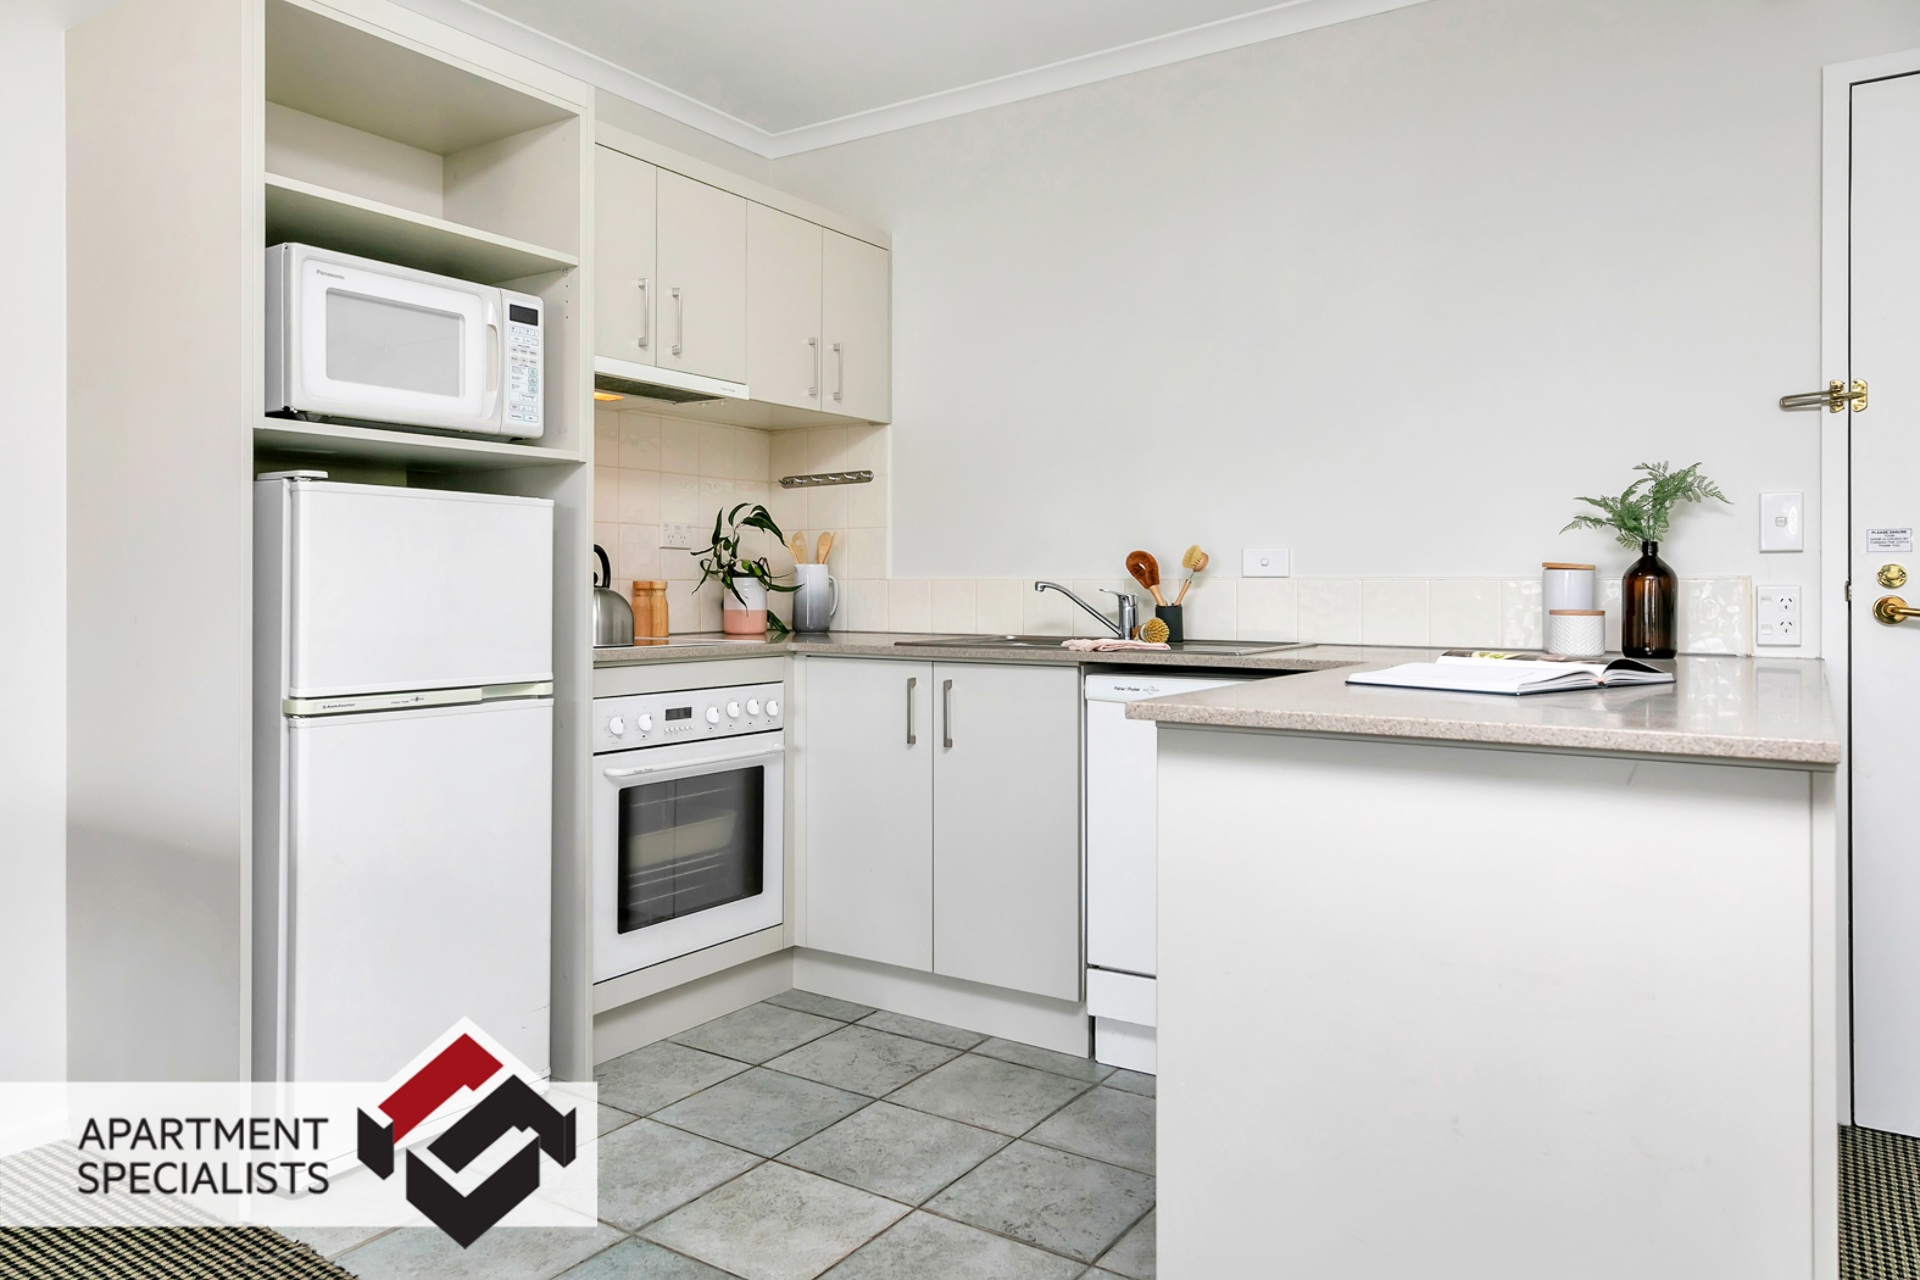 12 | 363 Queen Street, City Centre | Apartment Specialists